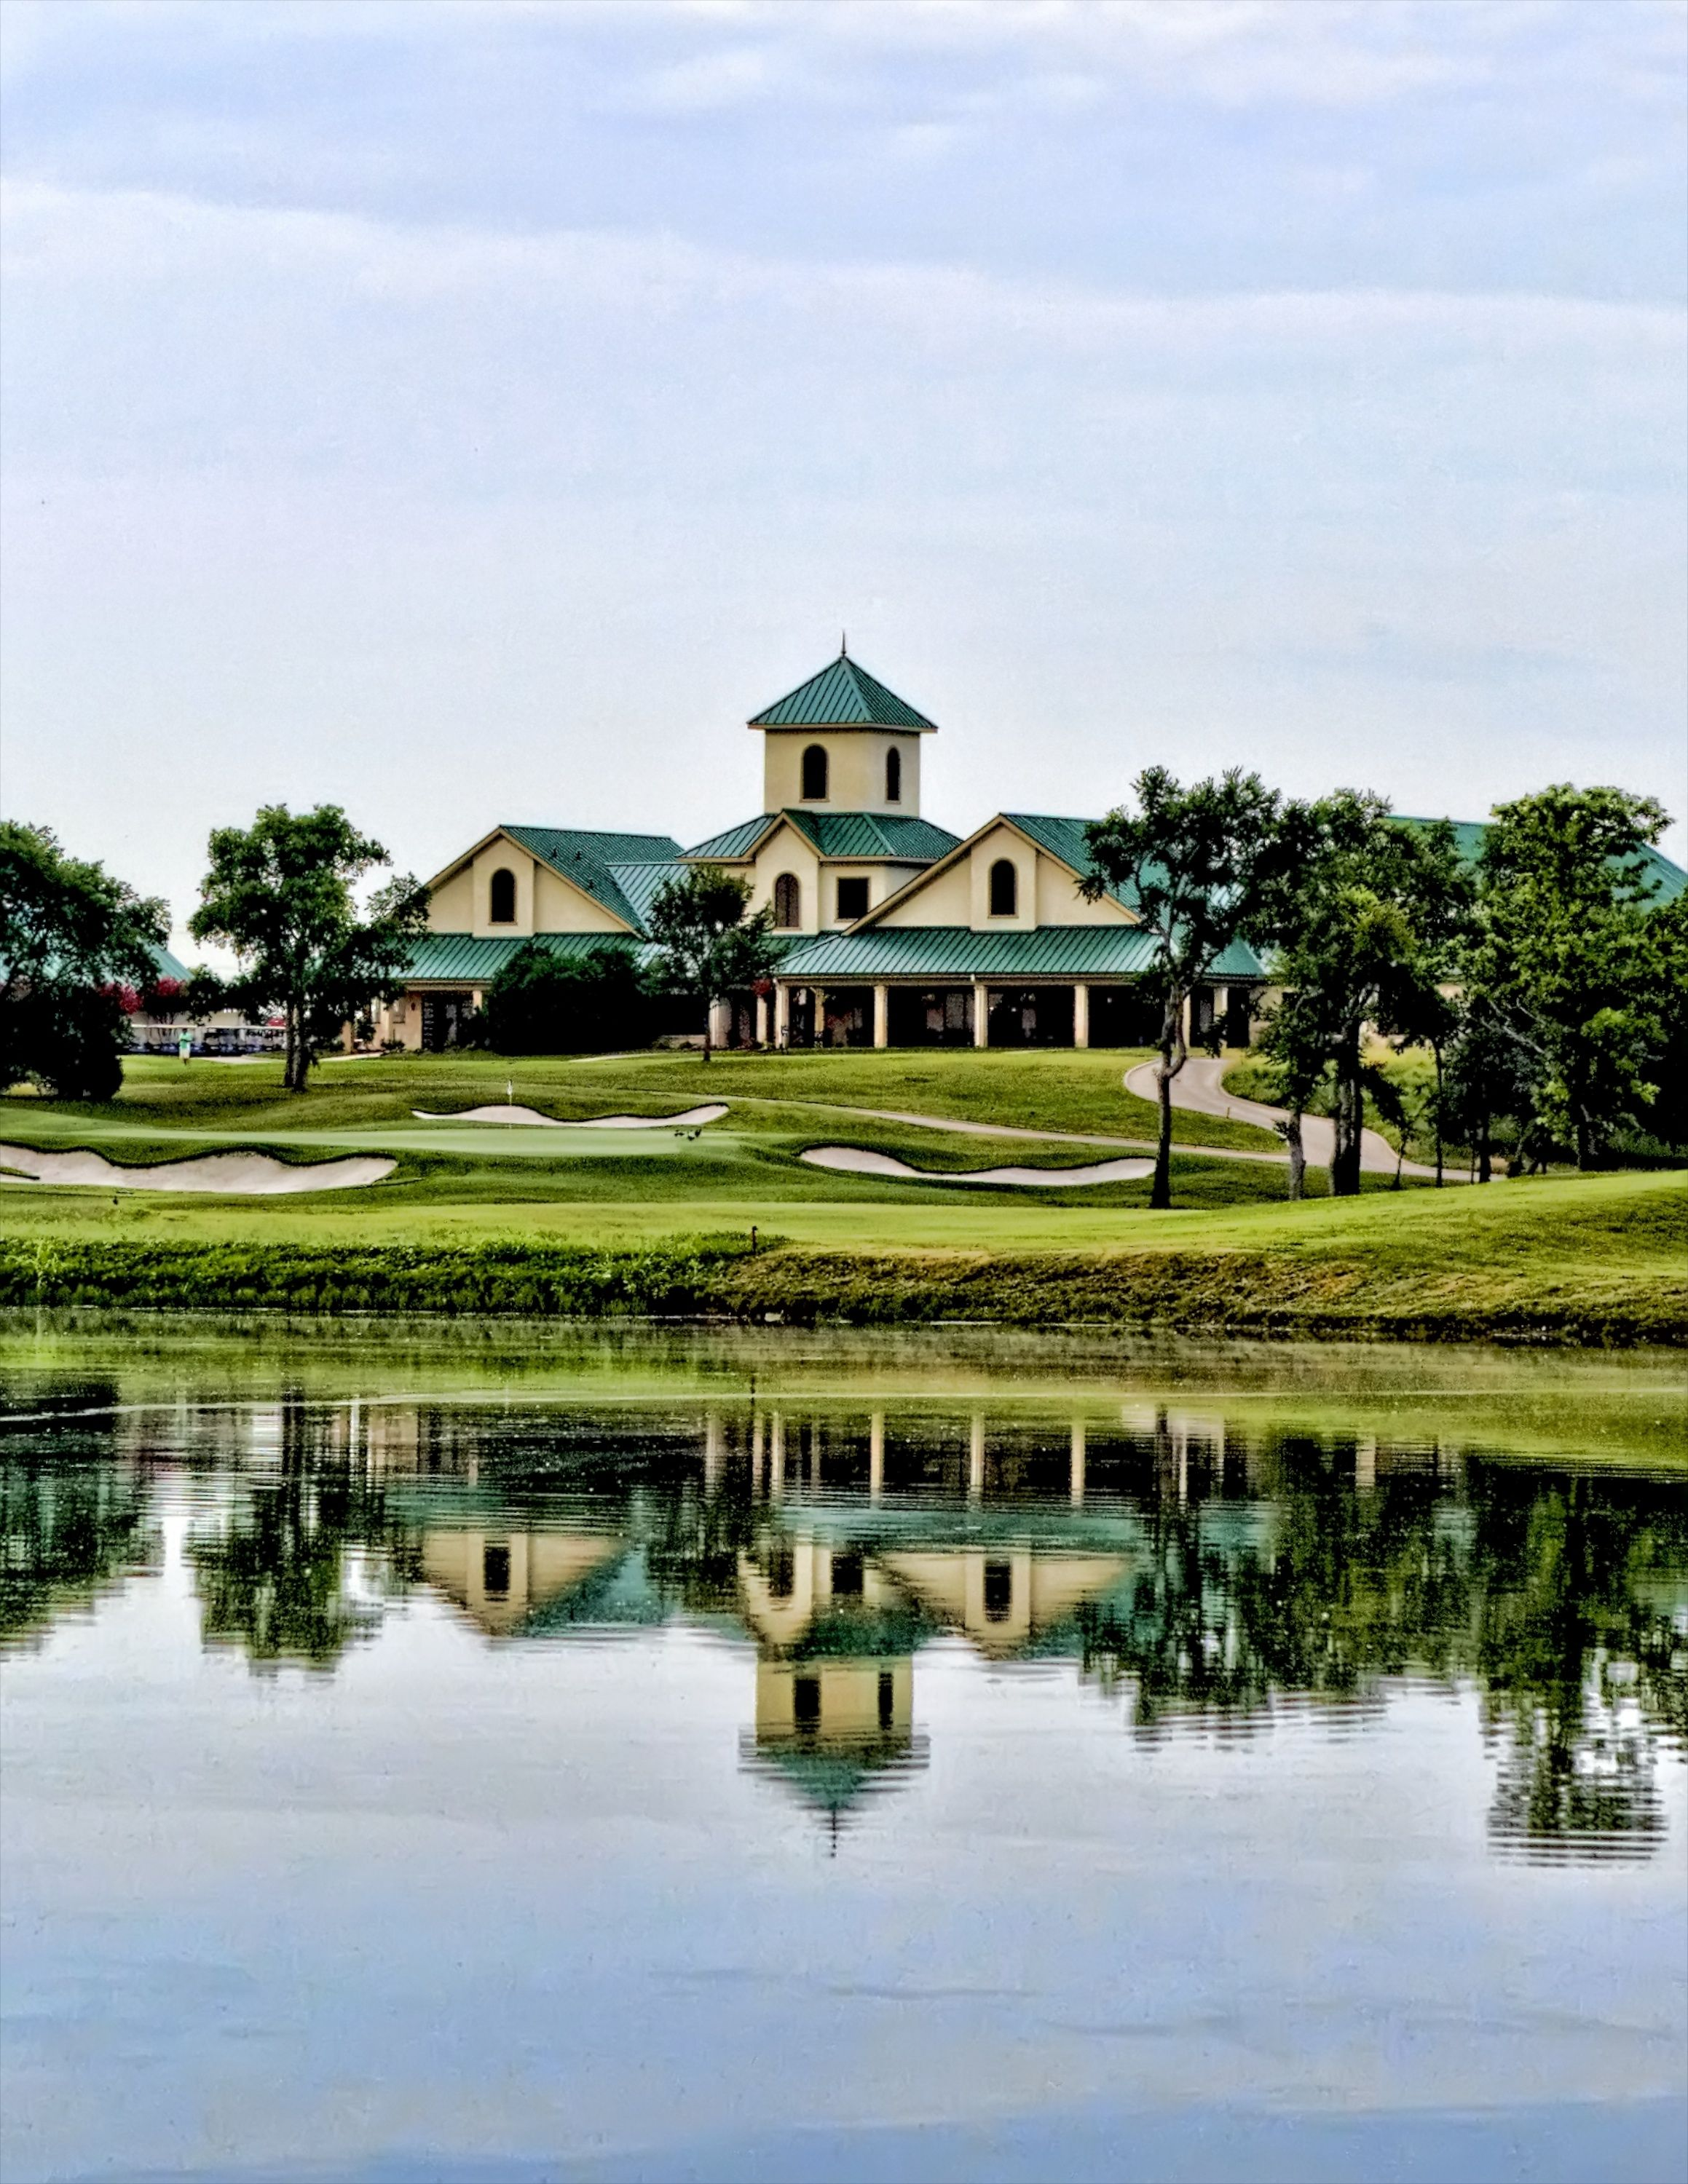 Gentle Creek Country Club Prosper Tx A Fast Growing Suburb Of Dallas Tx Suburbs Mansions Golf Courses